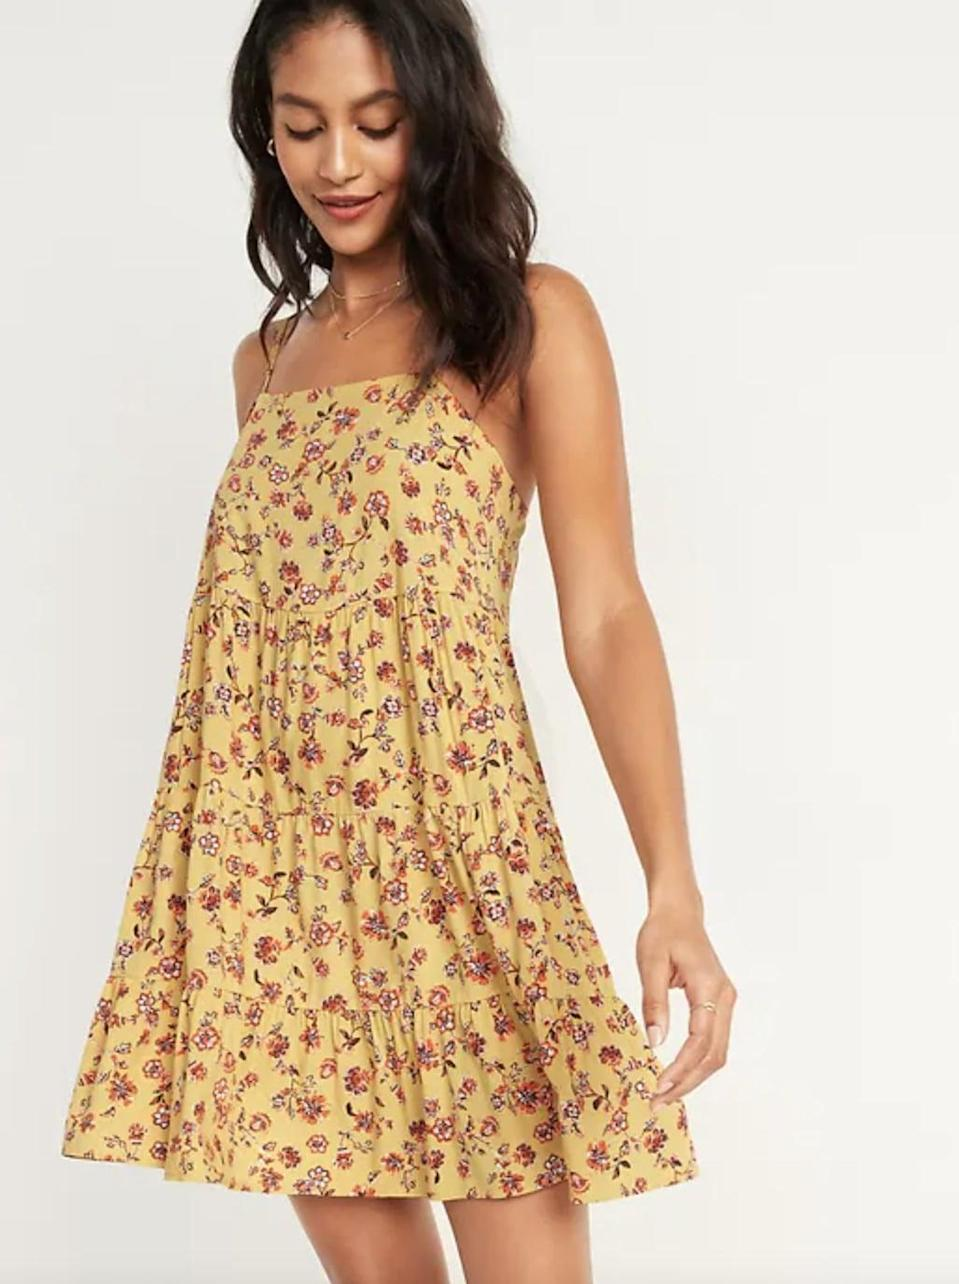 <p>We love the easy-breezy nature of this fun <span>Printed Sleeveless Tiered Swing Dress</span> ($25, originally $34). It's a great pick for warm day parties.</p>